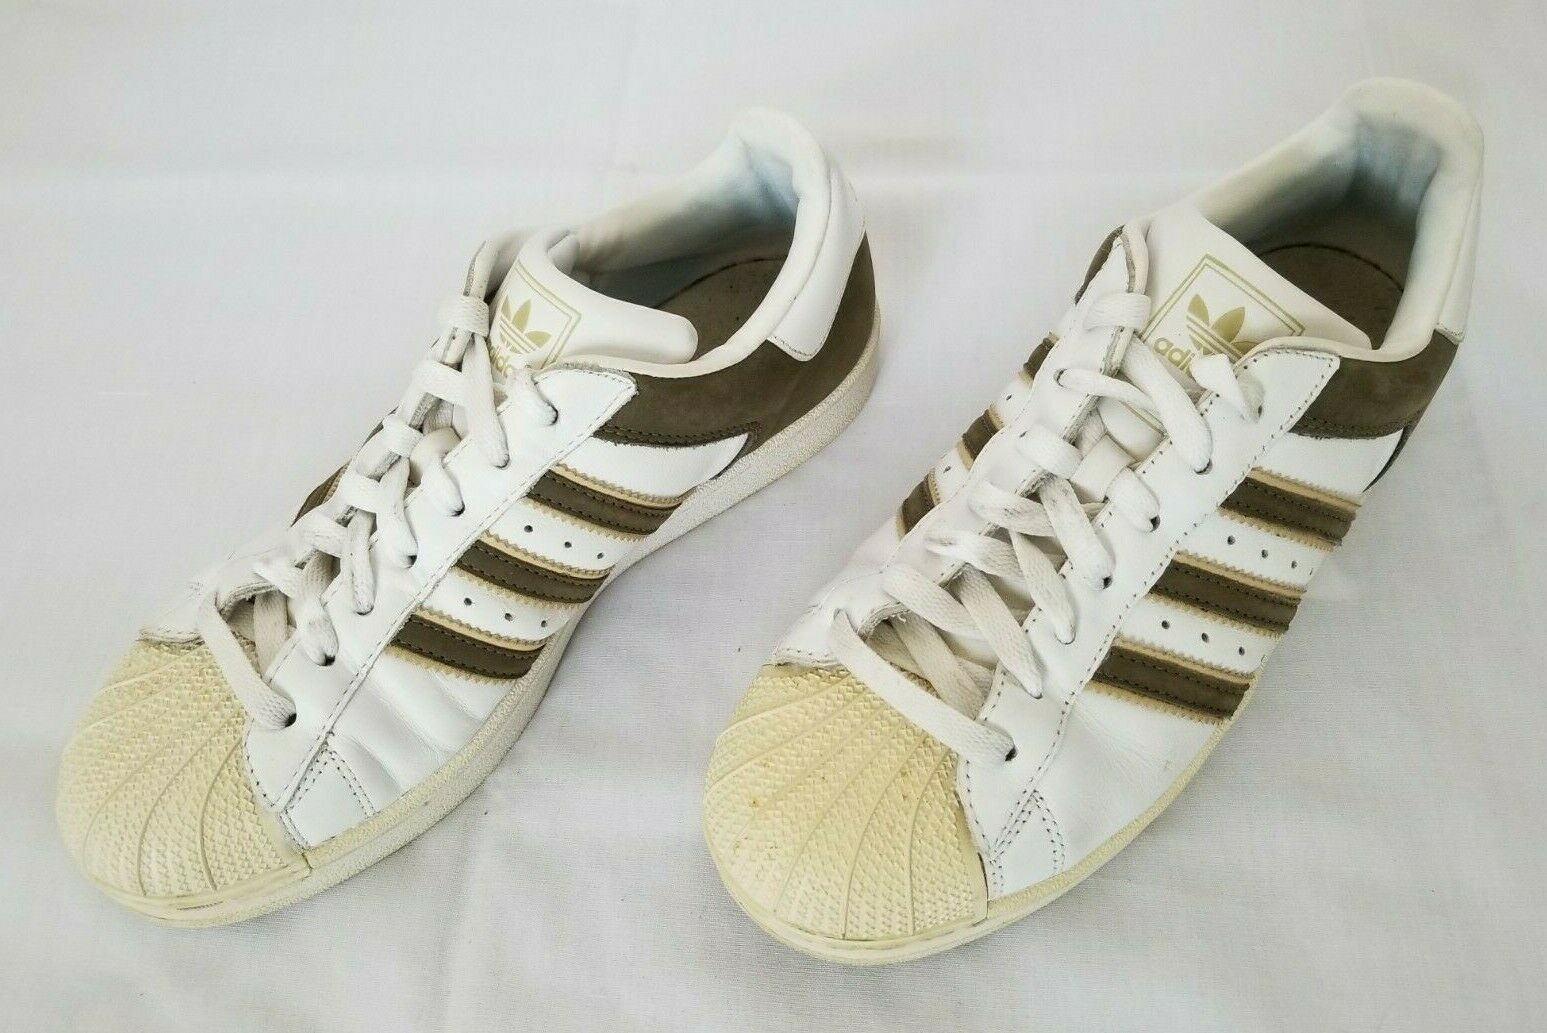 Mens Size 8 White Taupe Tan Vintage Adidas Superstar Leather Casual shoes